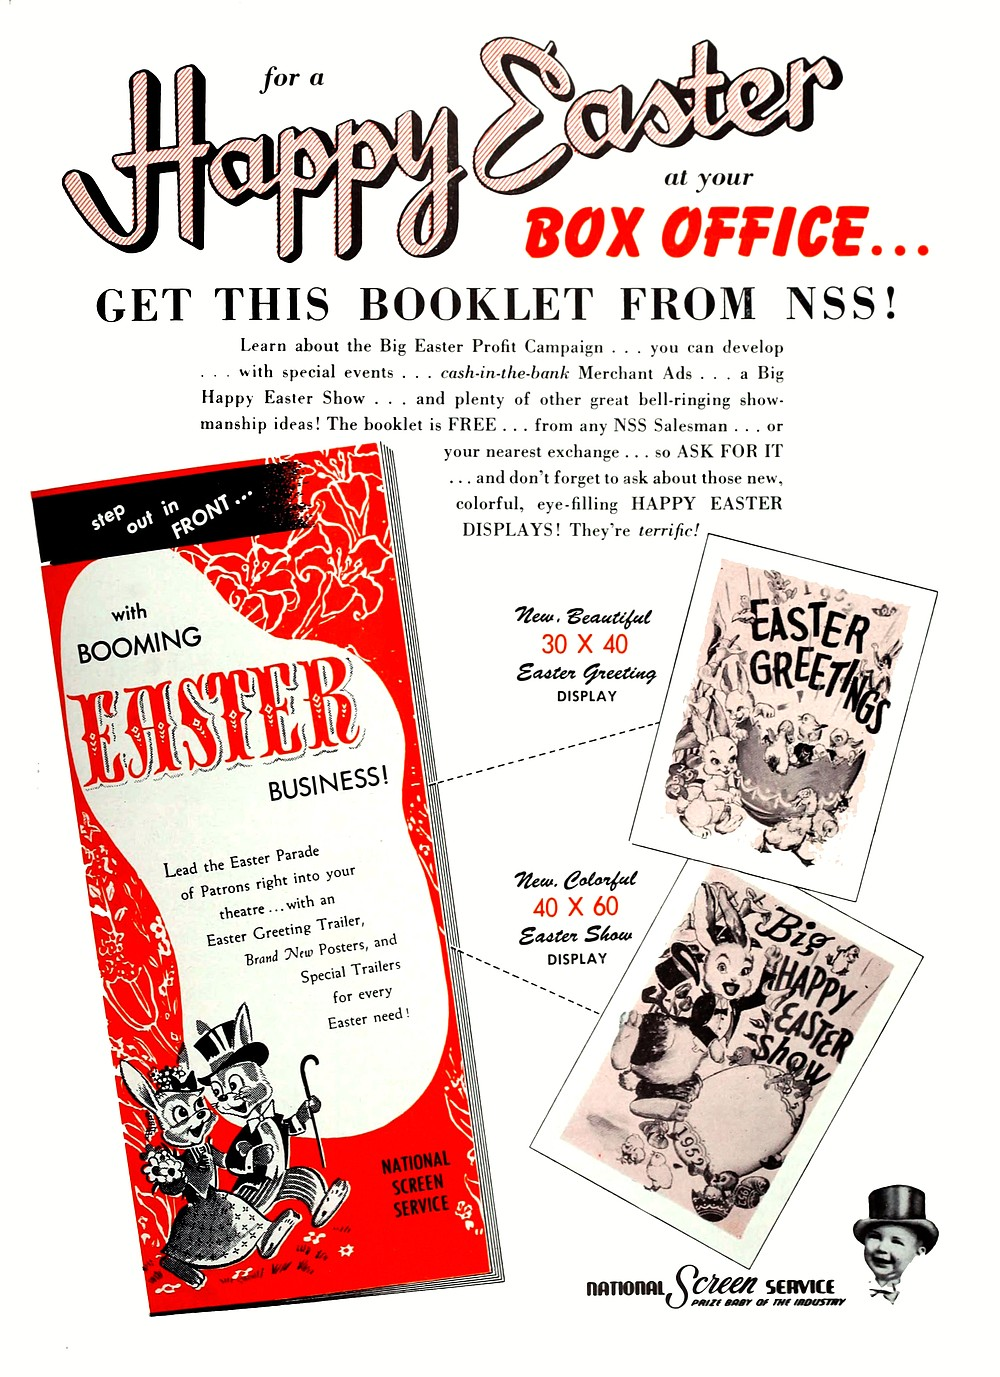 """National Screen Service's instructional booklet advises exhibitors on how to put cottontails in seats. """"The Film Bulletin,"""" March 24, 1952."""